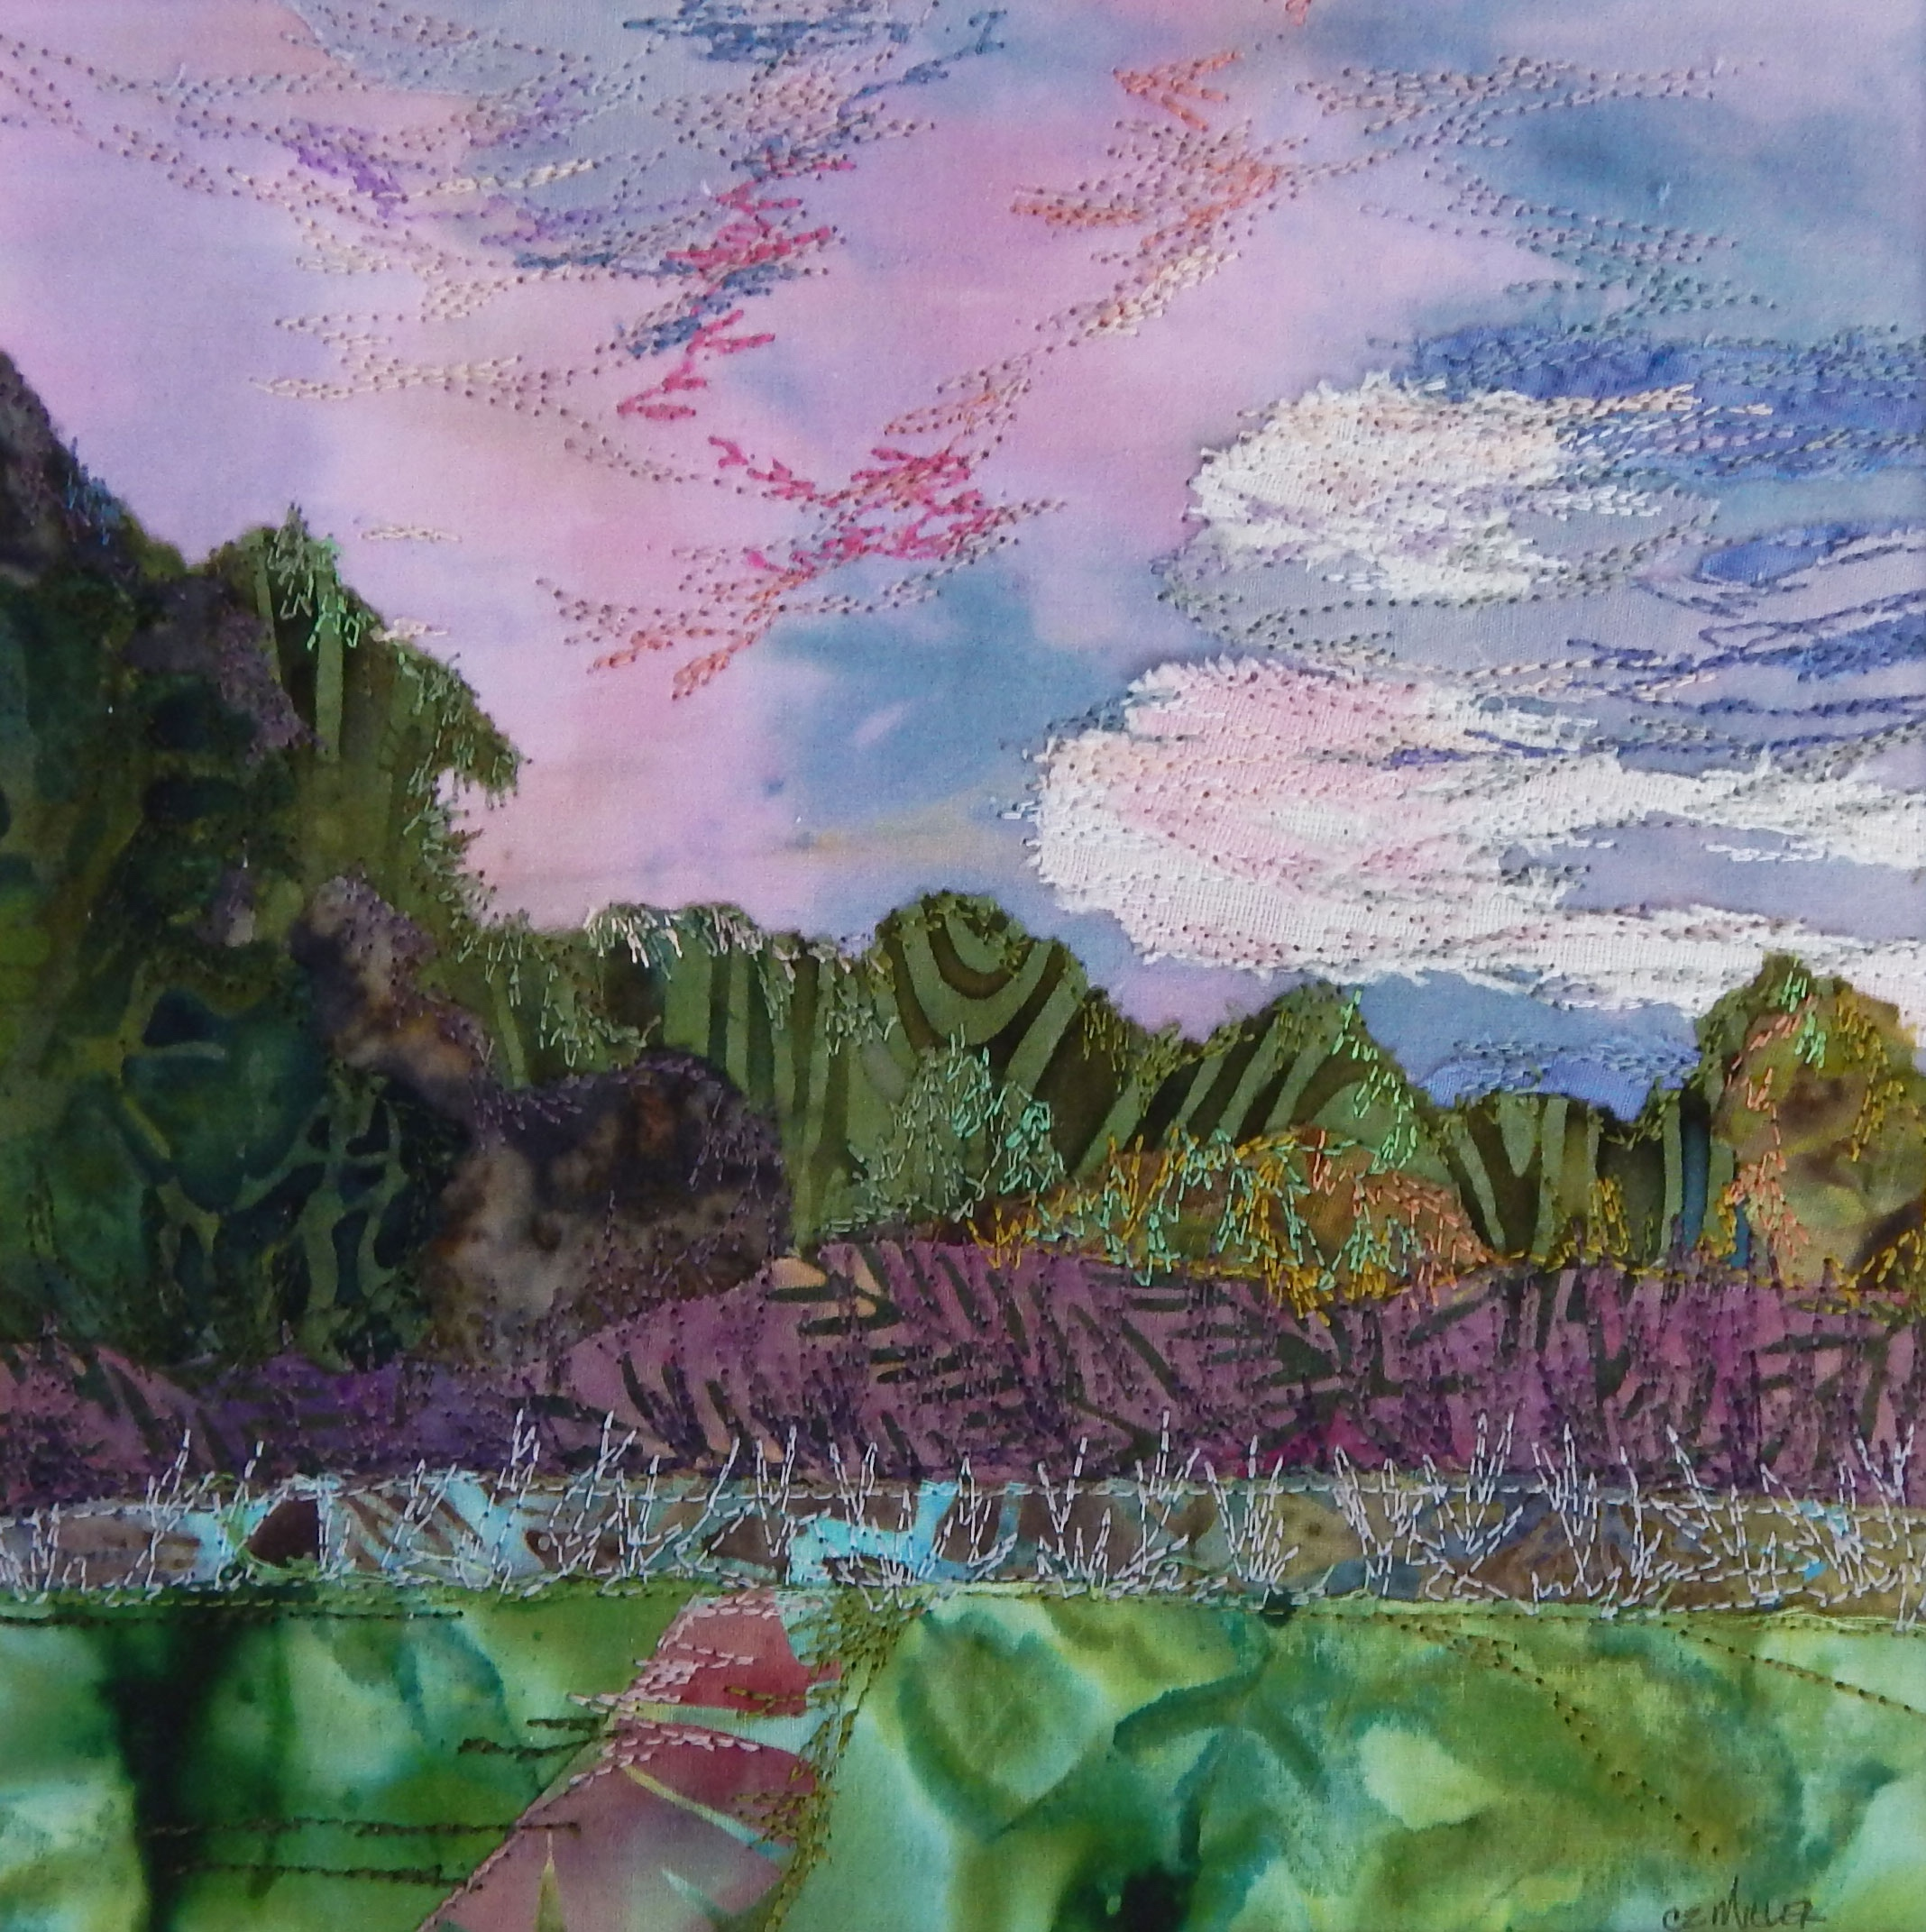 Evening Sky  - framed fabric collage made with hand dyed cottons, batiks and linen, machine stitched / raw edge appliquéd